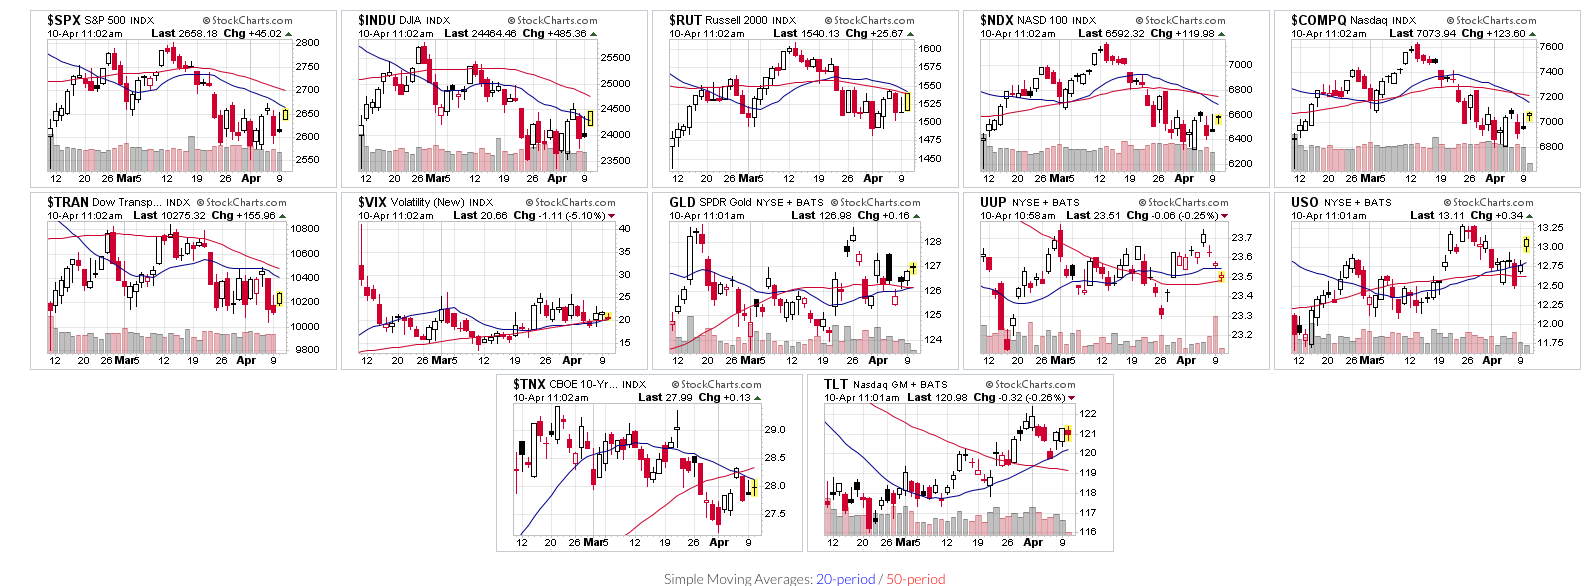 Screen Shot 2018-04-10 at 8.02.23 AM.png